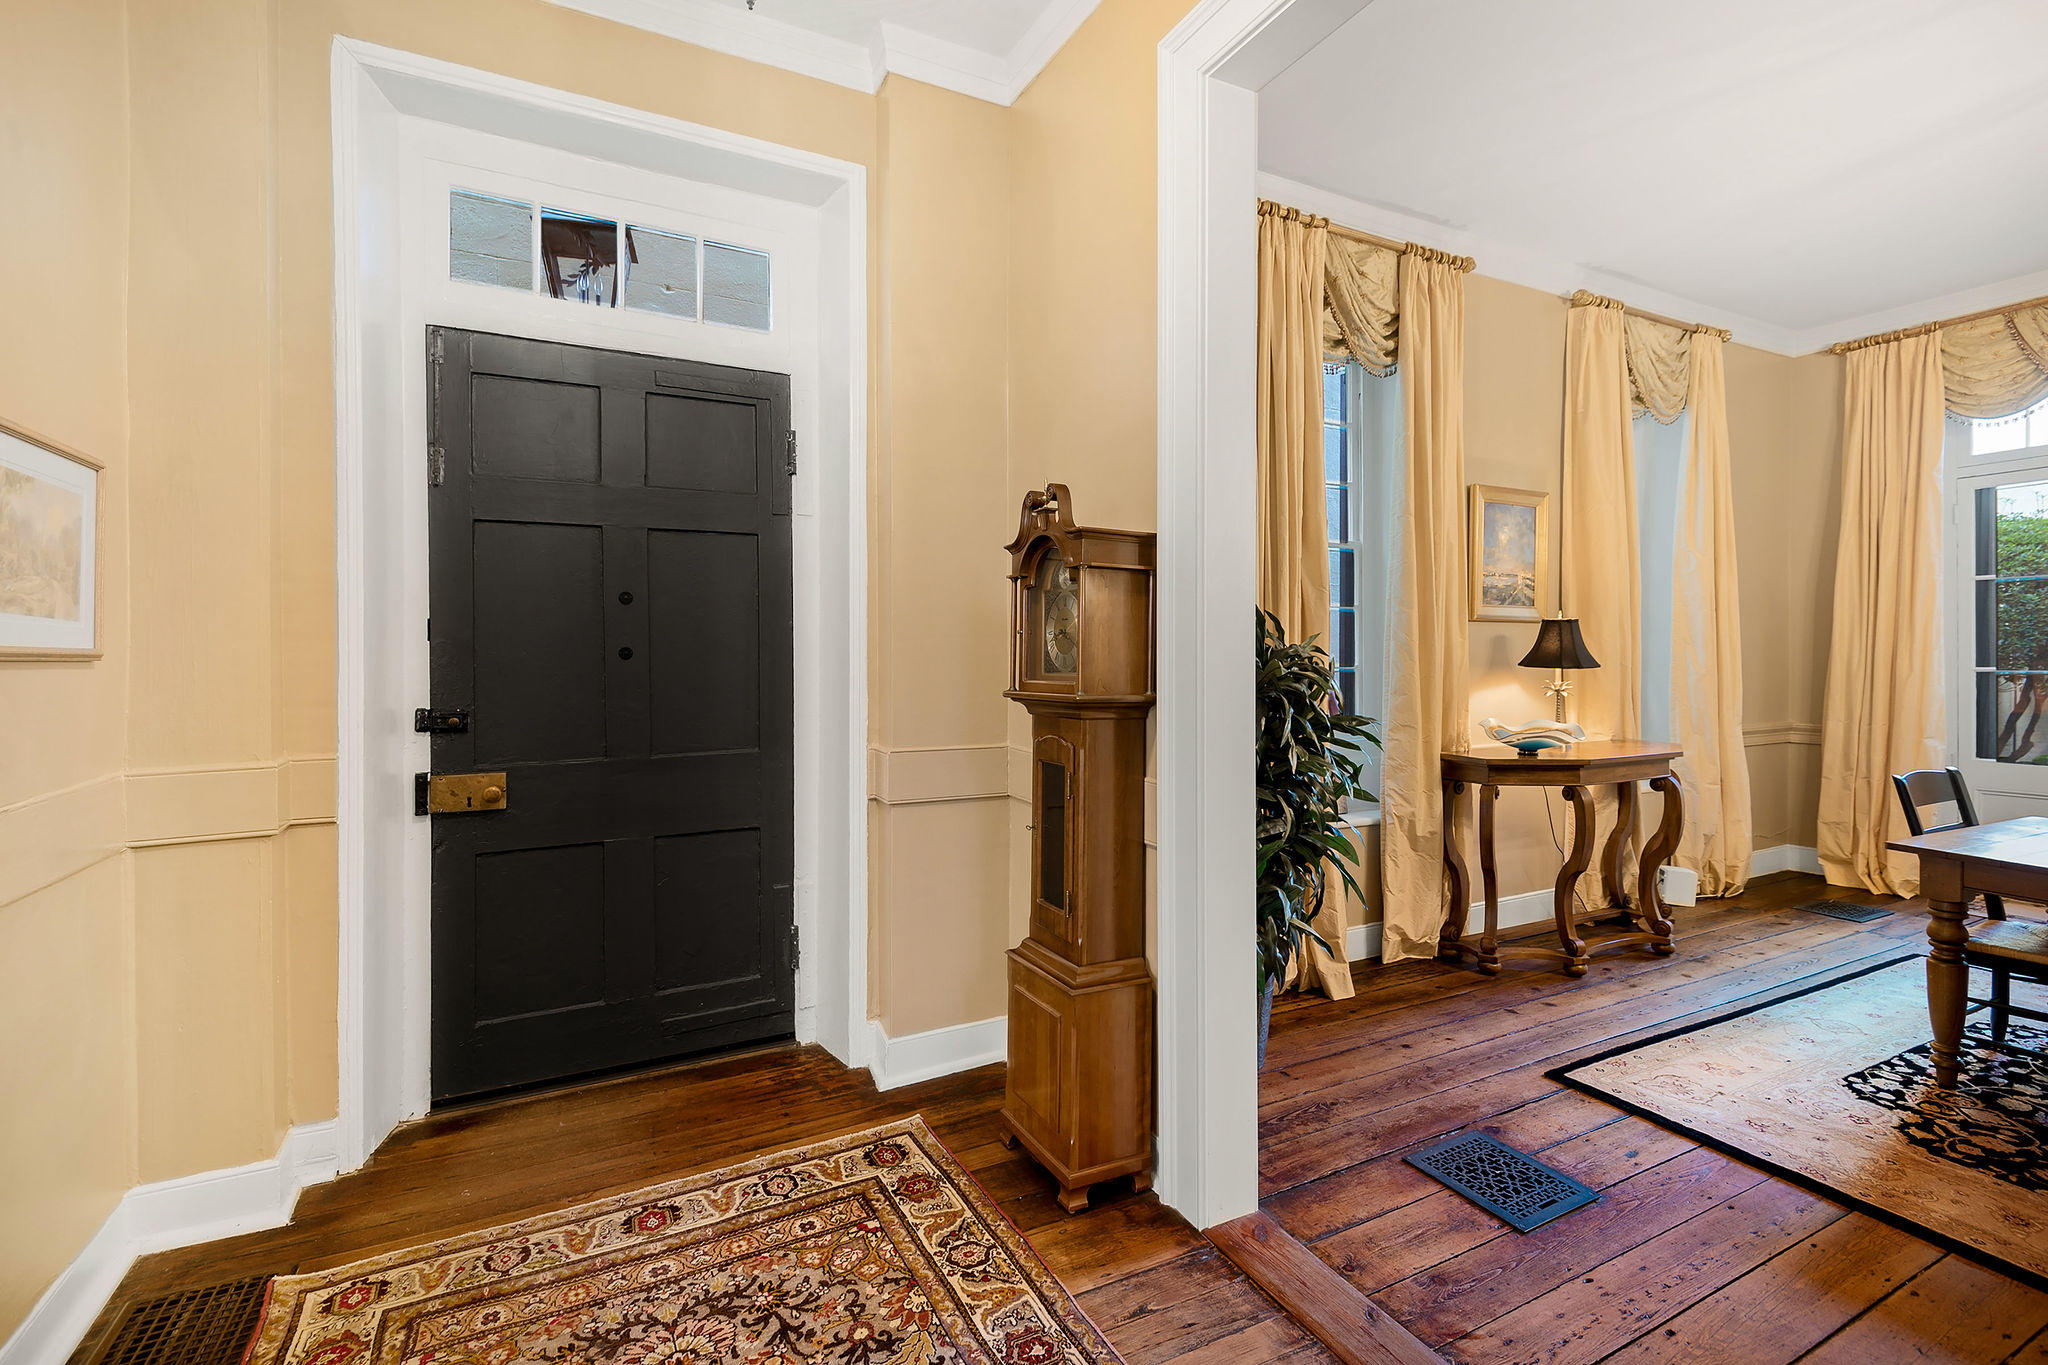 South of Broad Homes For Sale - 54 Tradd, Charleston, SC - 10